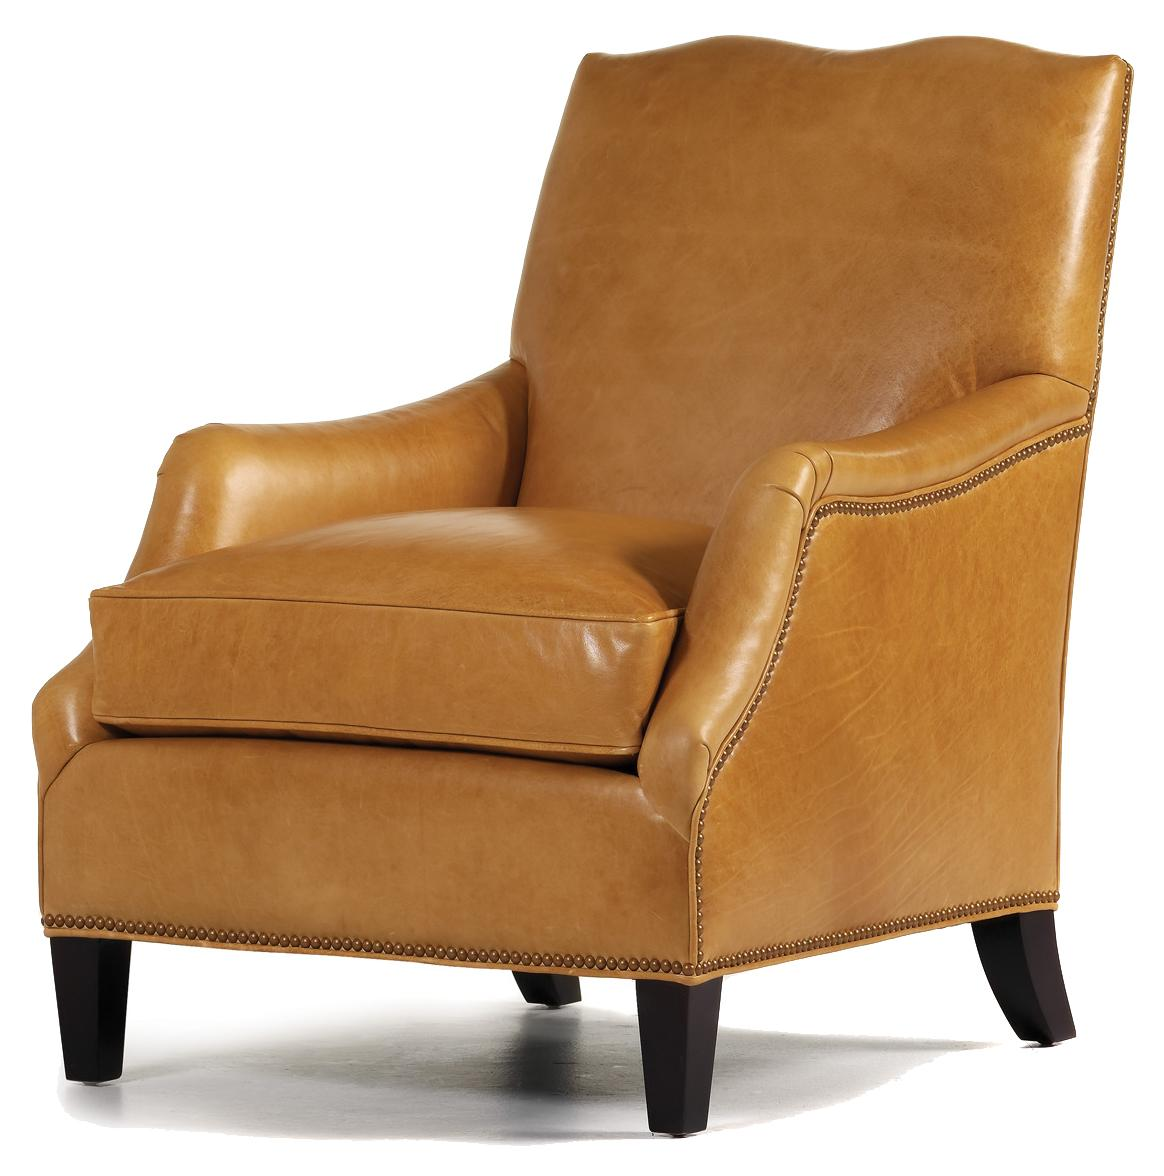 Fine Upholstered Accents Nancy Chair    by Jessica Charles at Sprintz Furniture